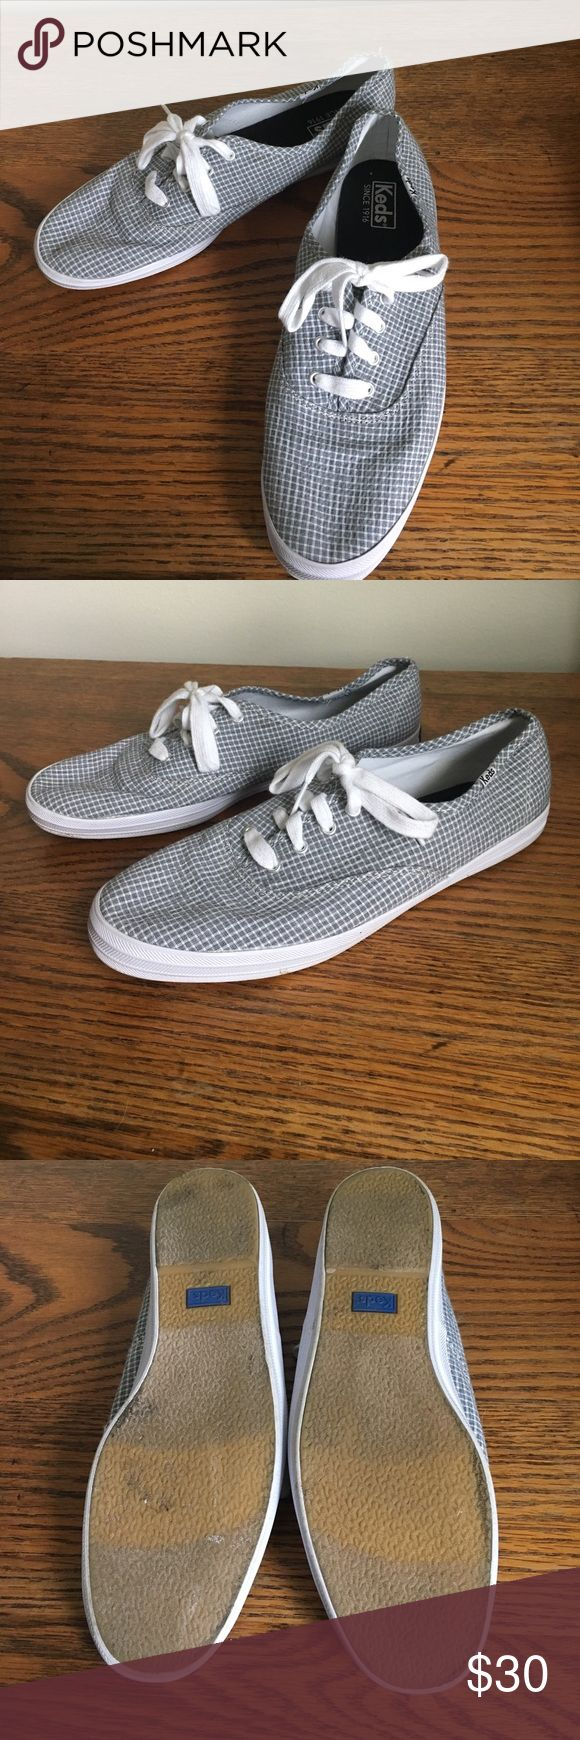 Selling this Grey Checkered Keds on Poshmark! My username is: jijill. #shopmycloset #poshmark #fashion #shopping #style #forsale #Keds #Shoes